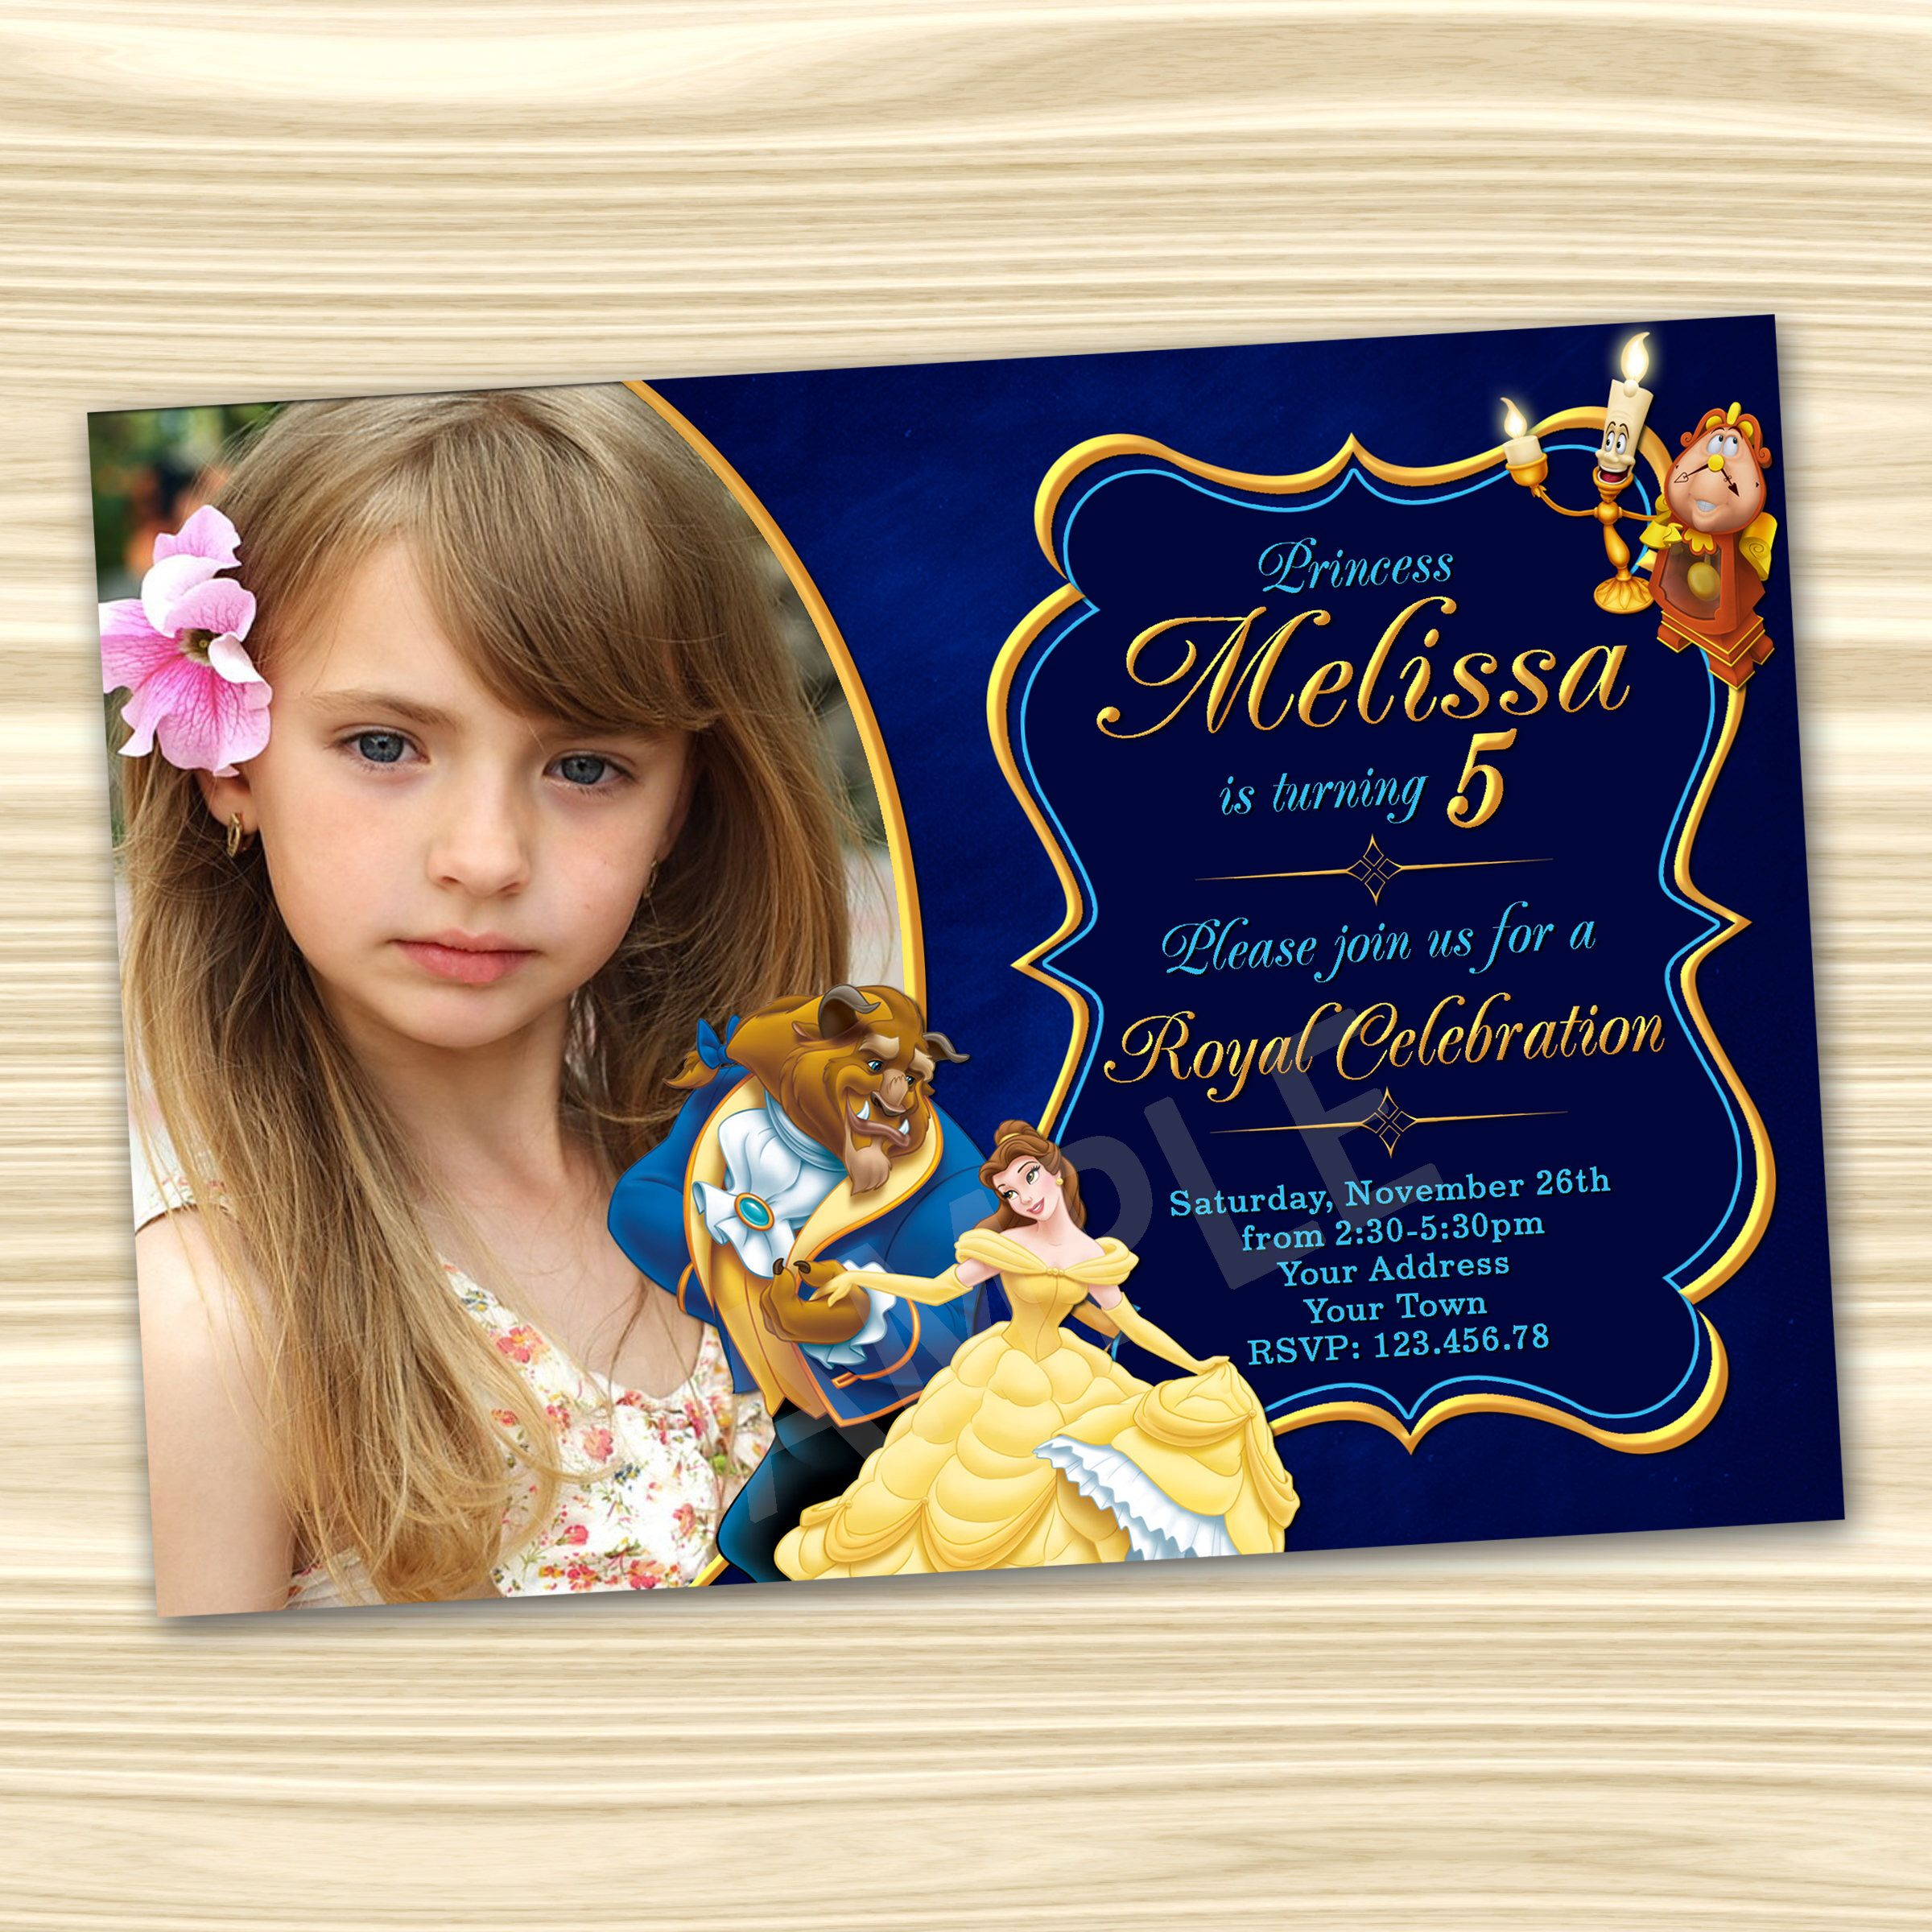 Beauty and the Beast Invitations. Princess Belle